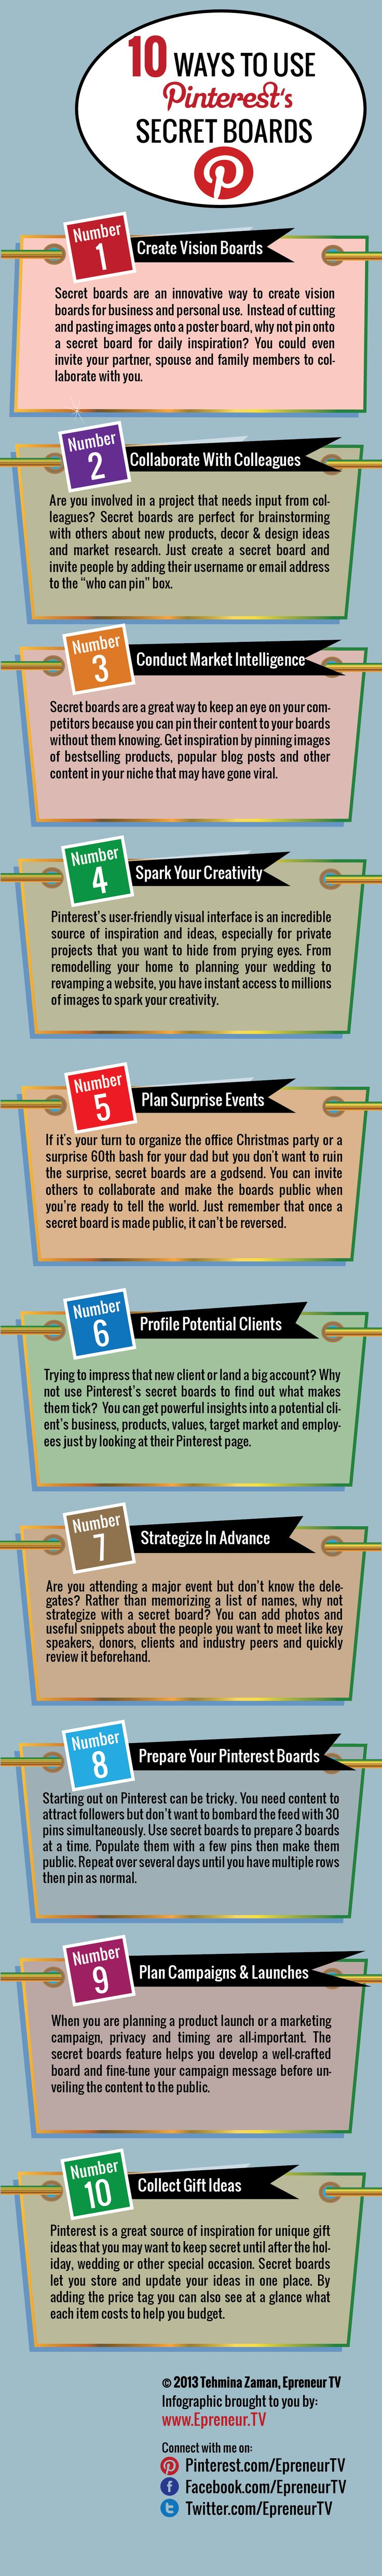 Making And Usage Of Pinterest Secret Boards #Pinterest